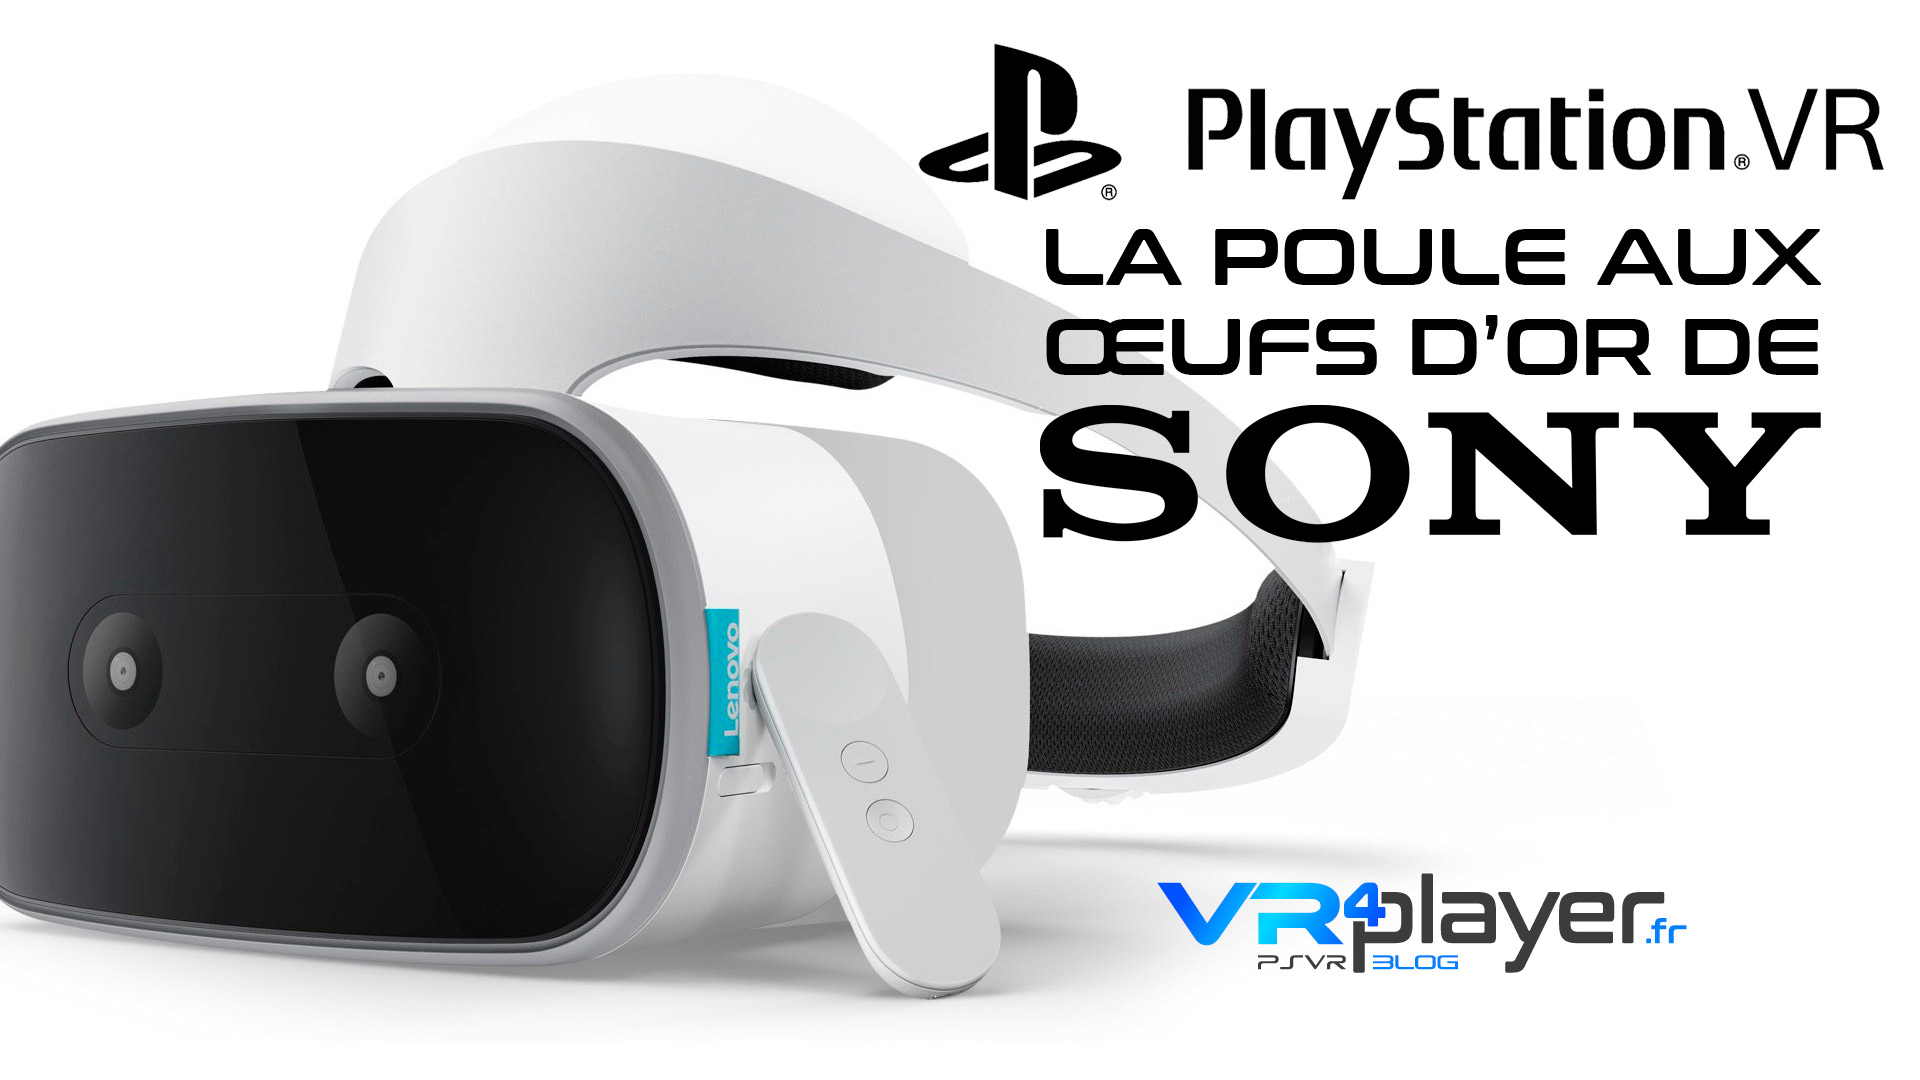 Lenovo, PlayStation VR, la poule aux œufs d'or de Sony ! Lenovo Mirage VR4player